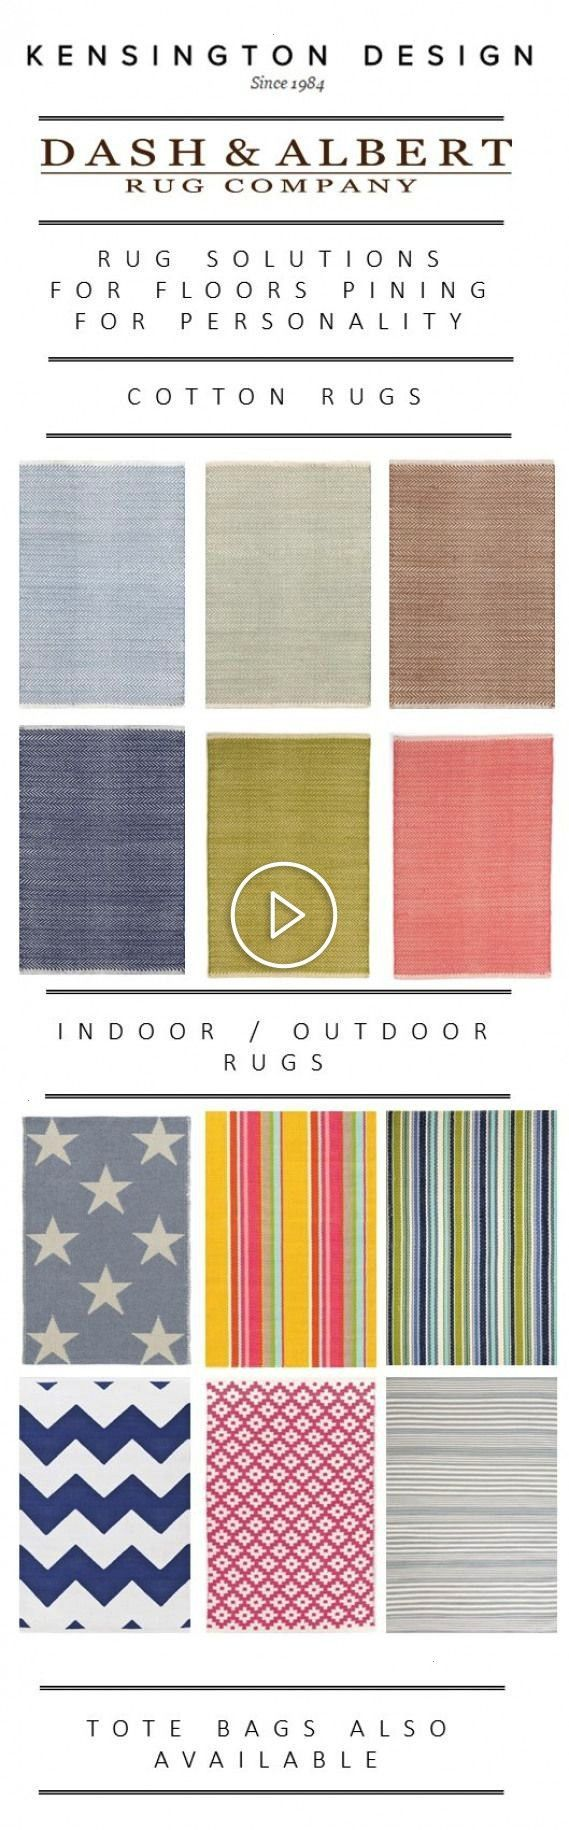 Fantastic Free Outdoor Rugs kmart Concepts You splurged on a new outdoor dining set and comfortable lounge chairs to entertain on the patio thi